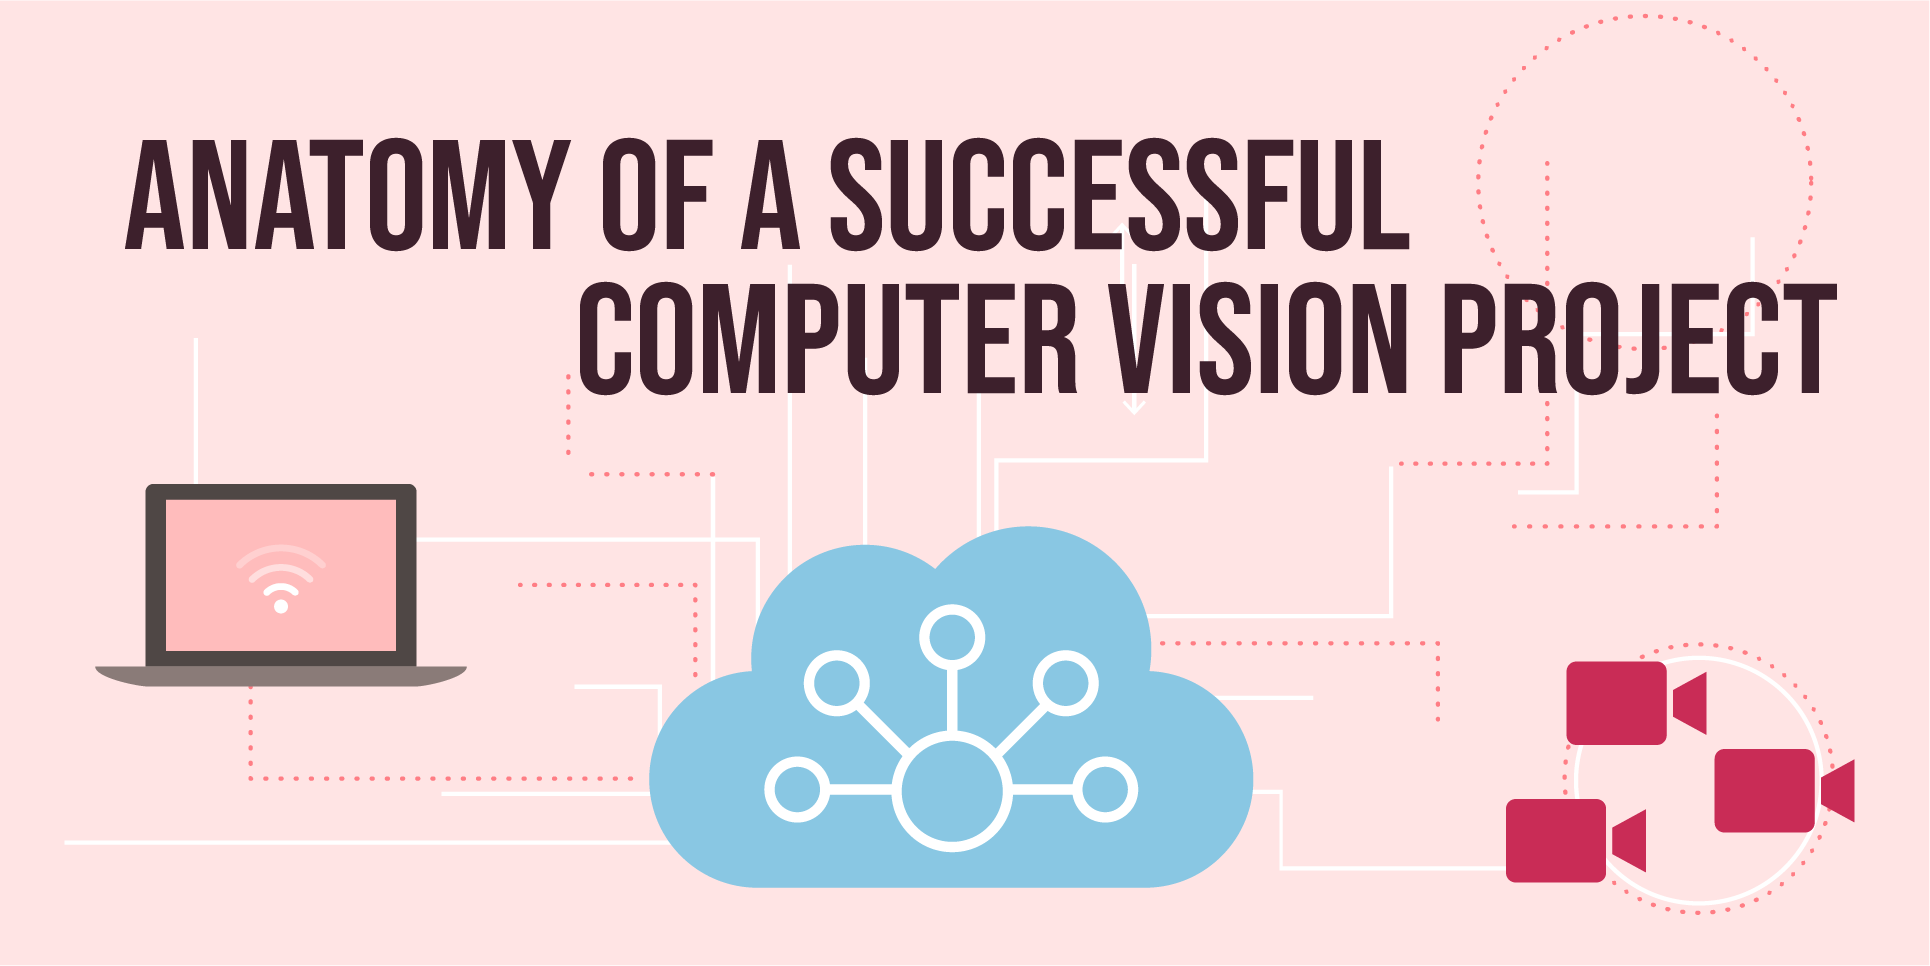 Anatomy of a Successful Computer Vision project